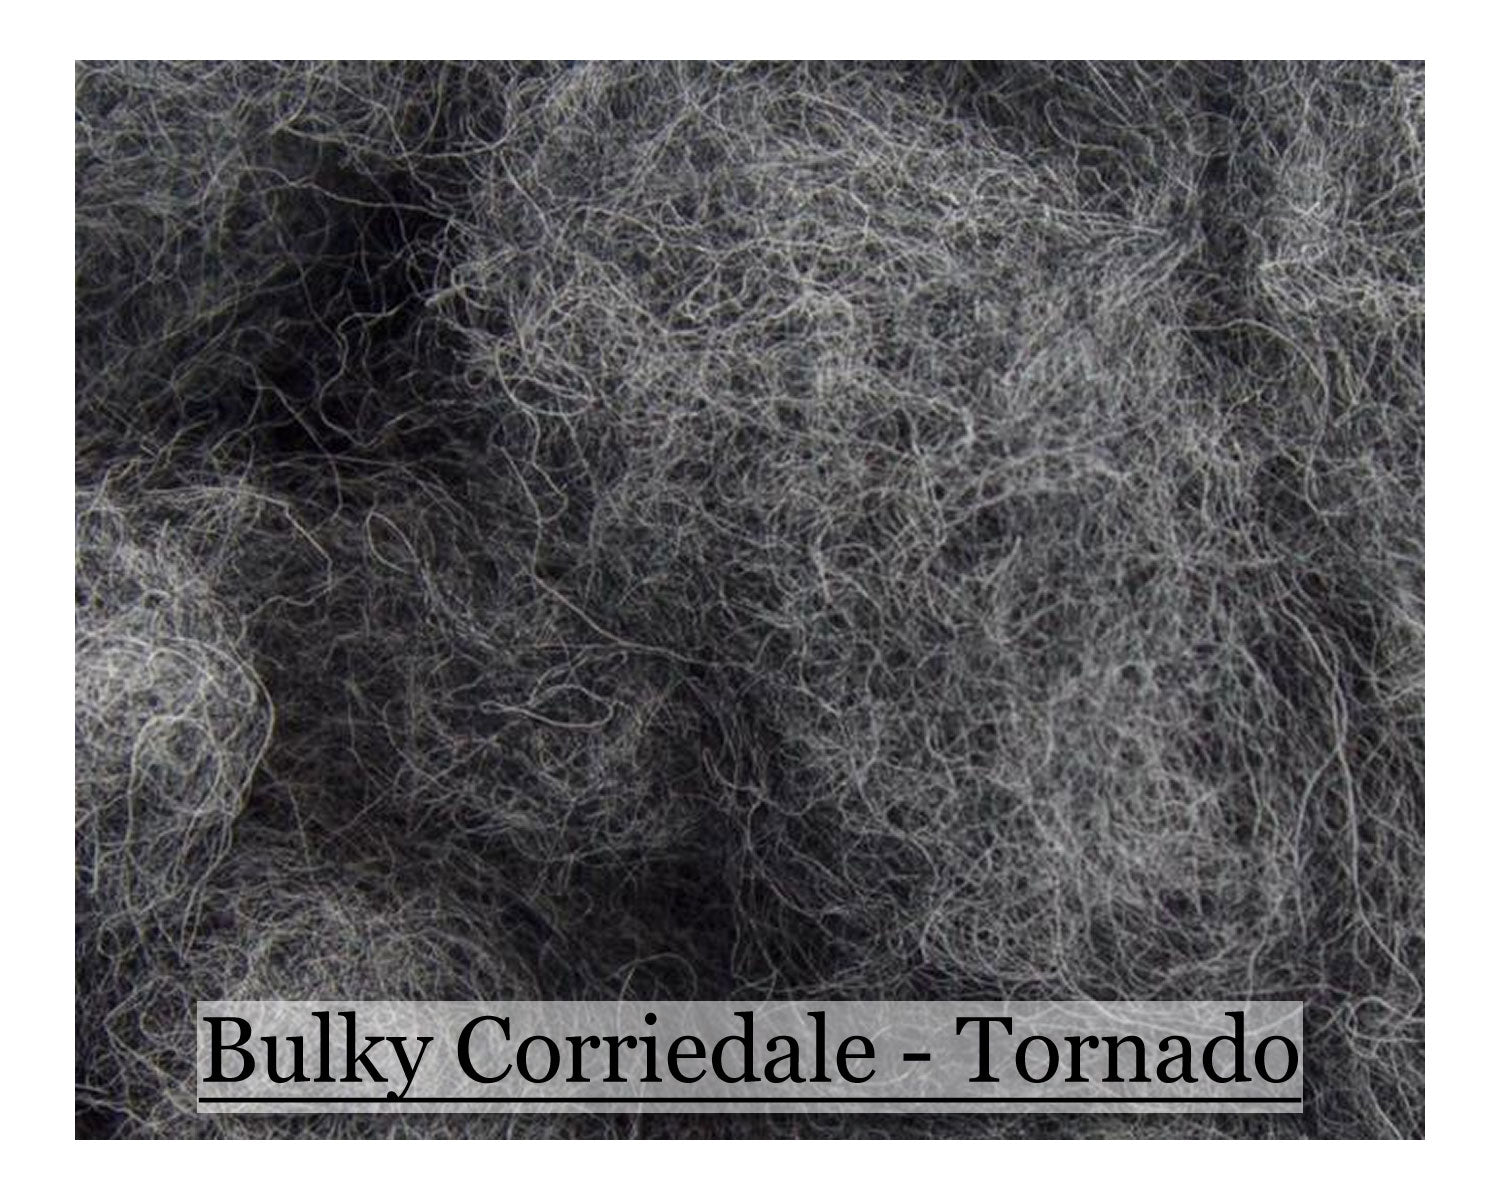 Tornado - Bulky Corriedale Wool - Shades of Grey Series - 8oz